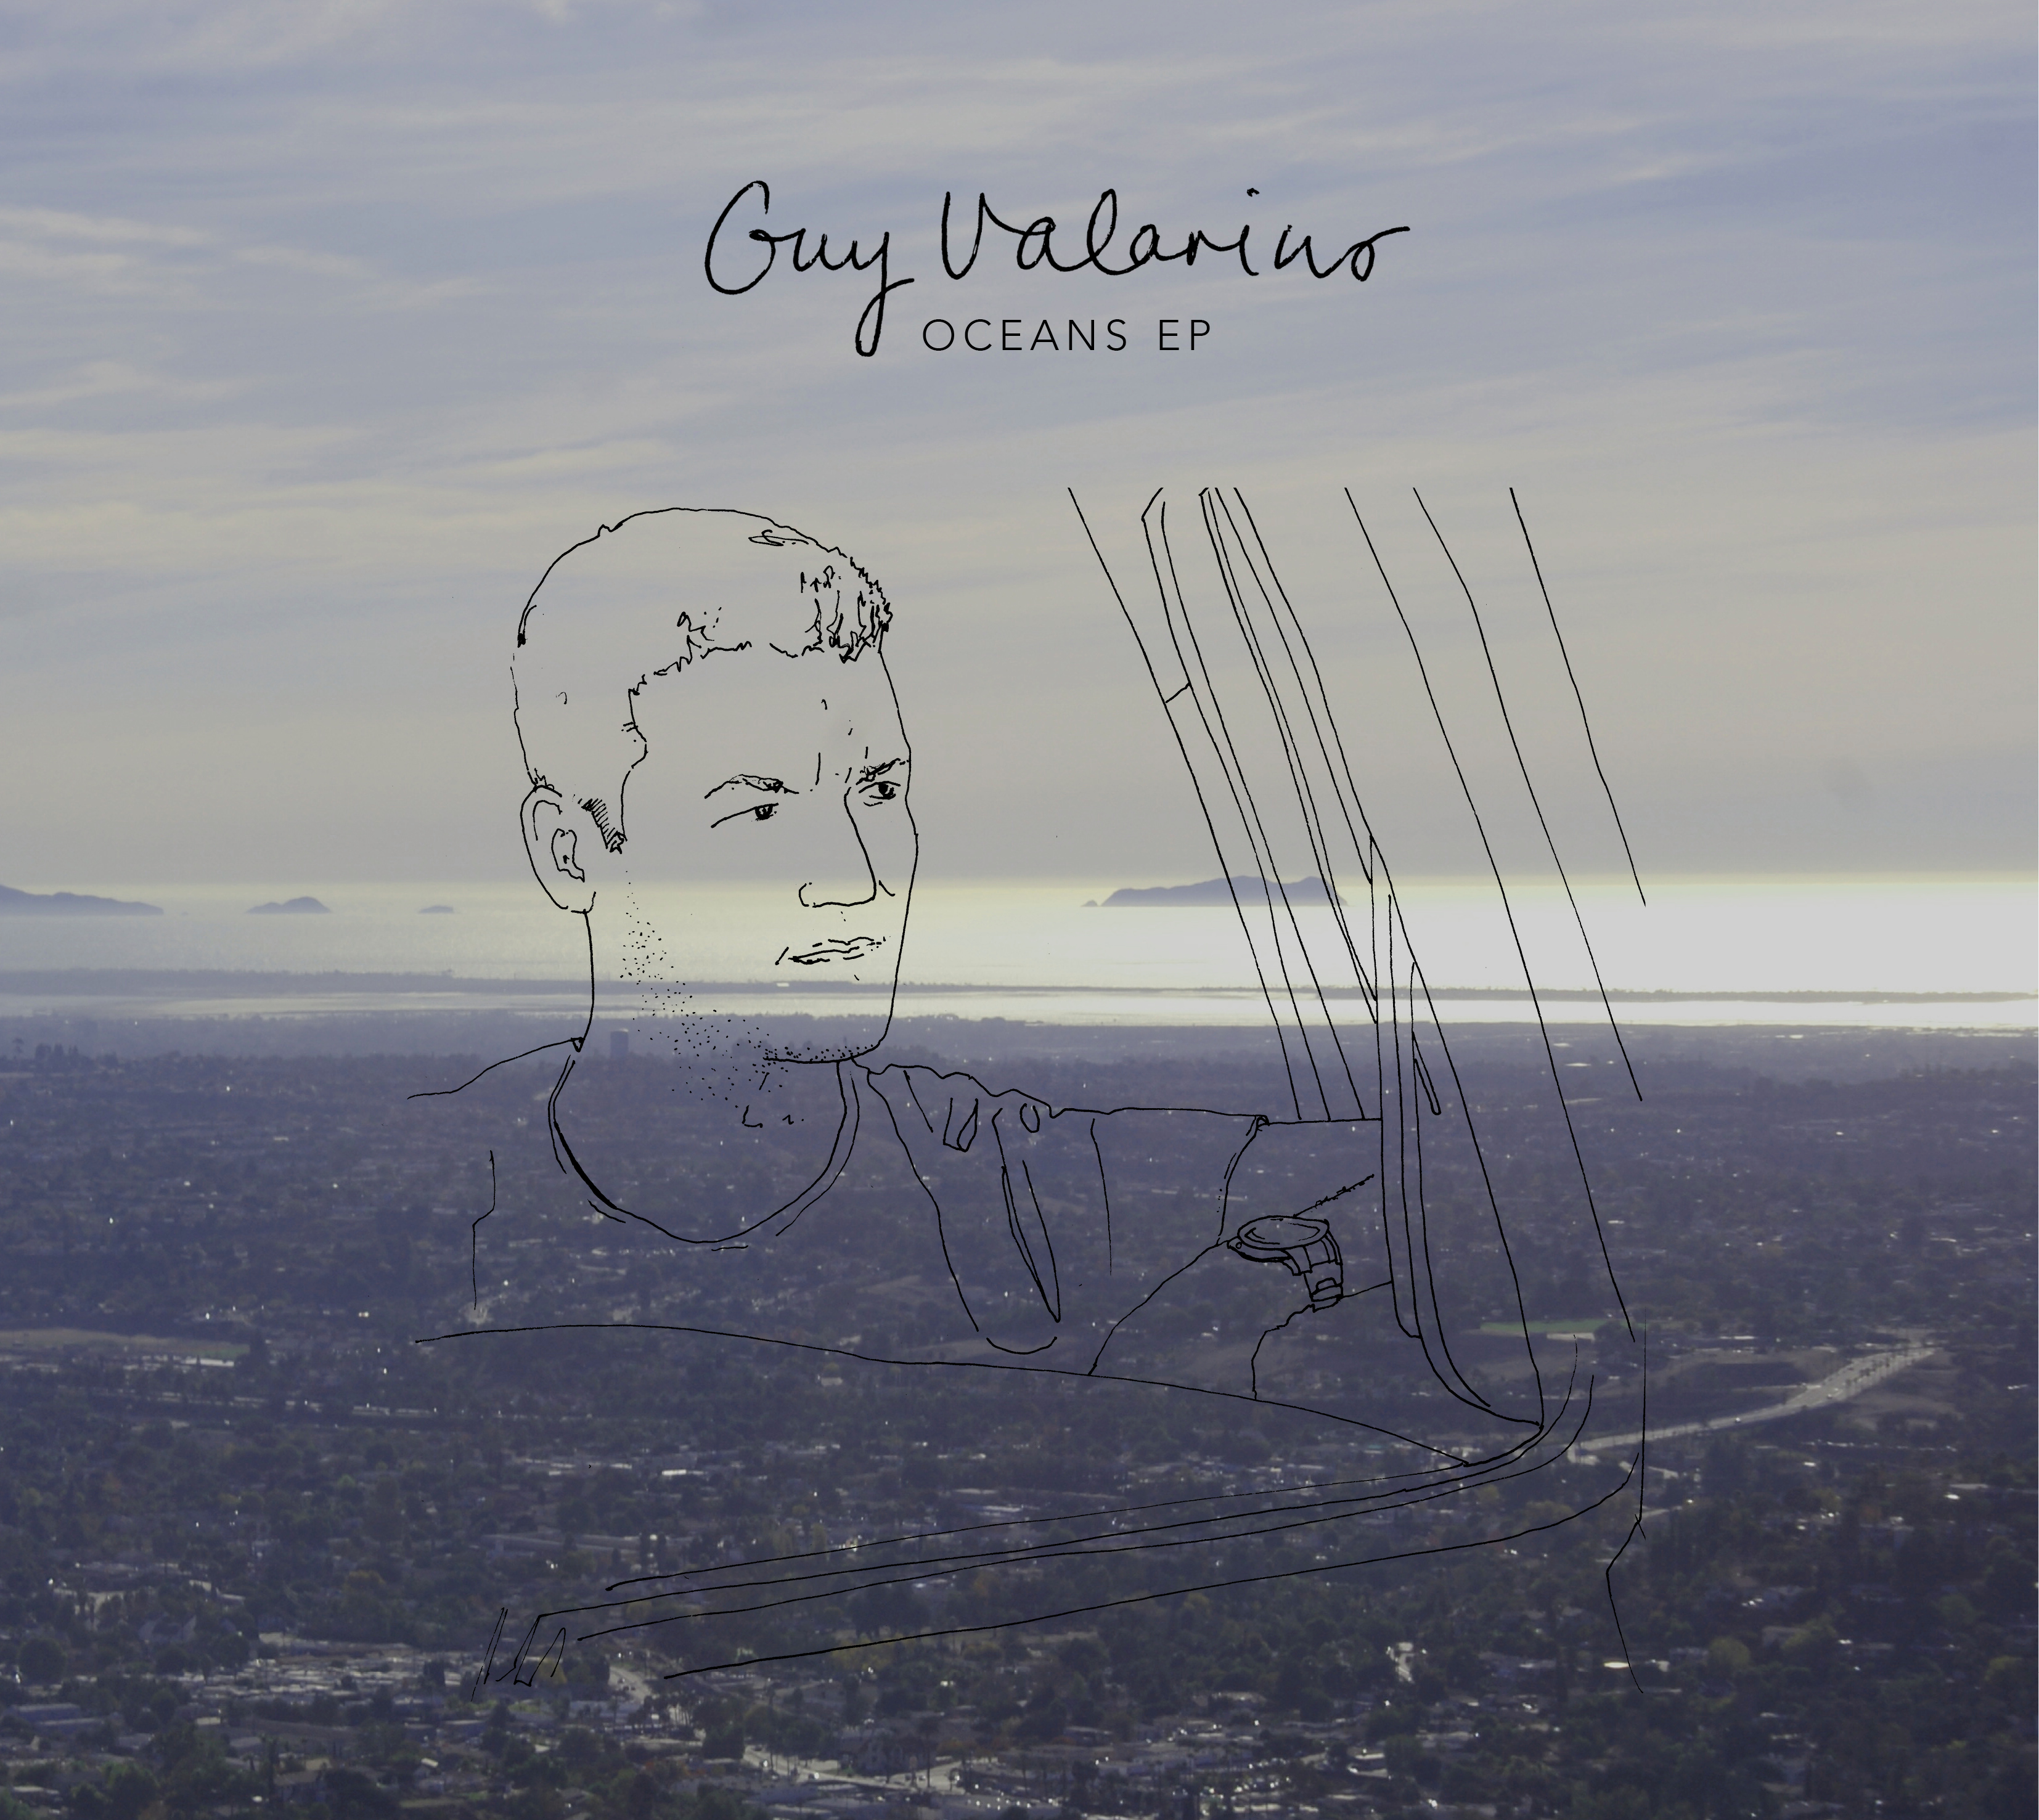 Oceans EP [Digital] - Guy Valarino